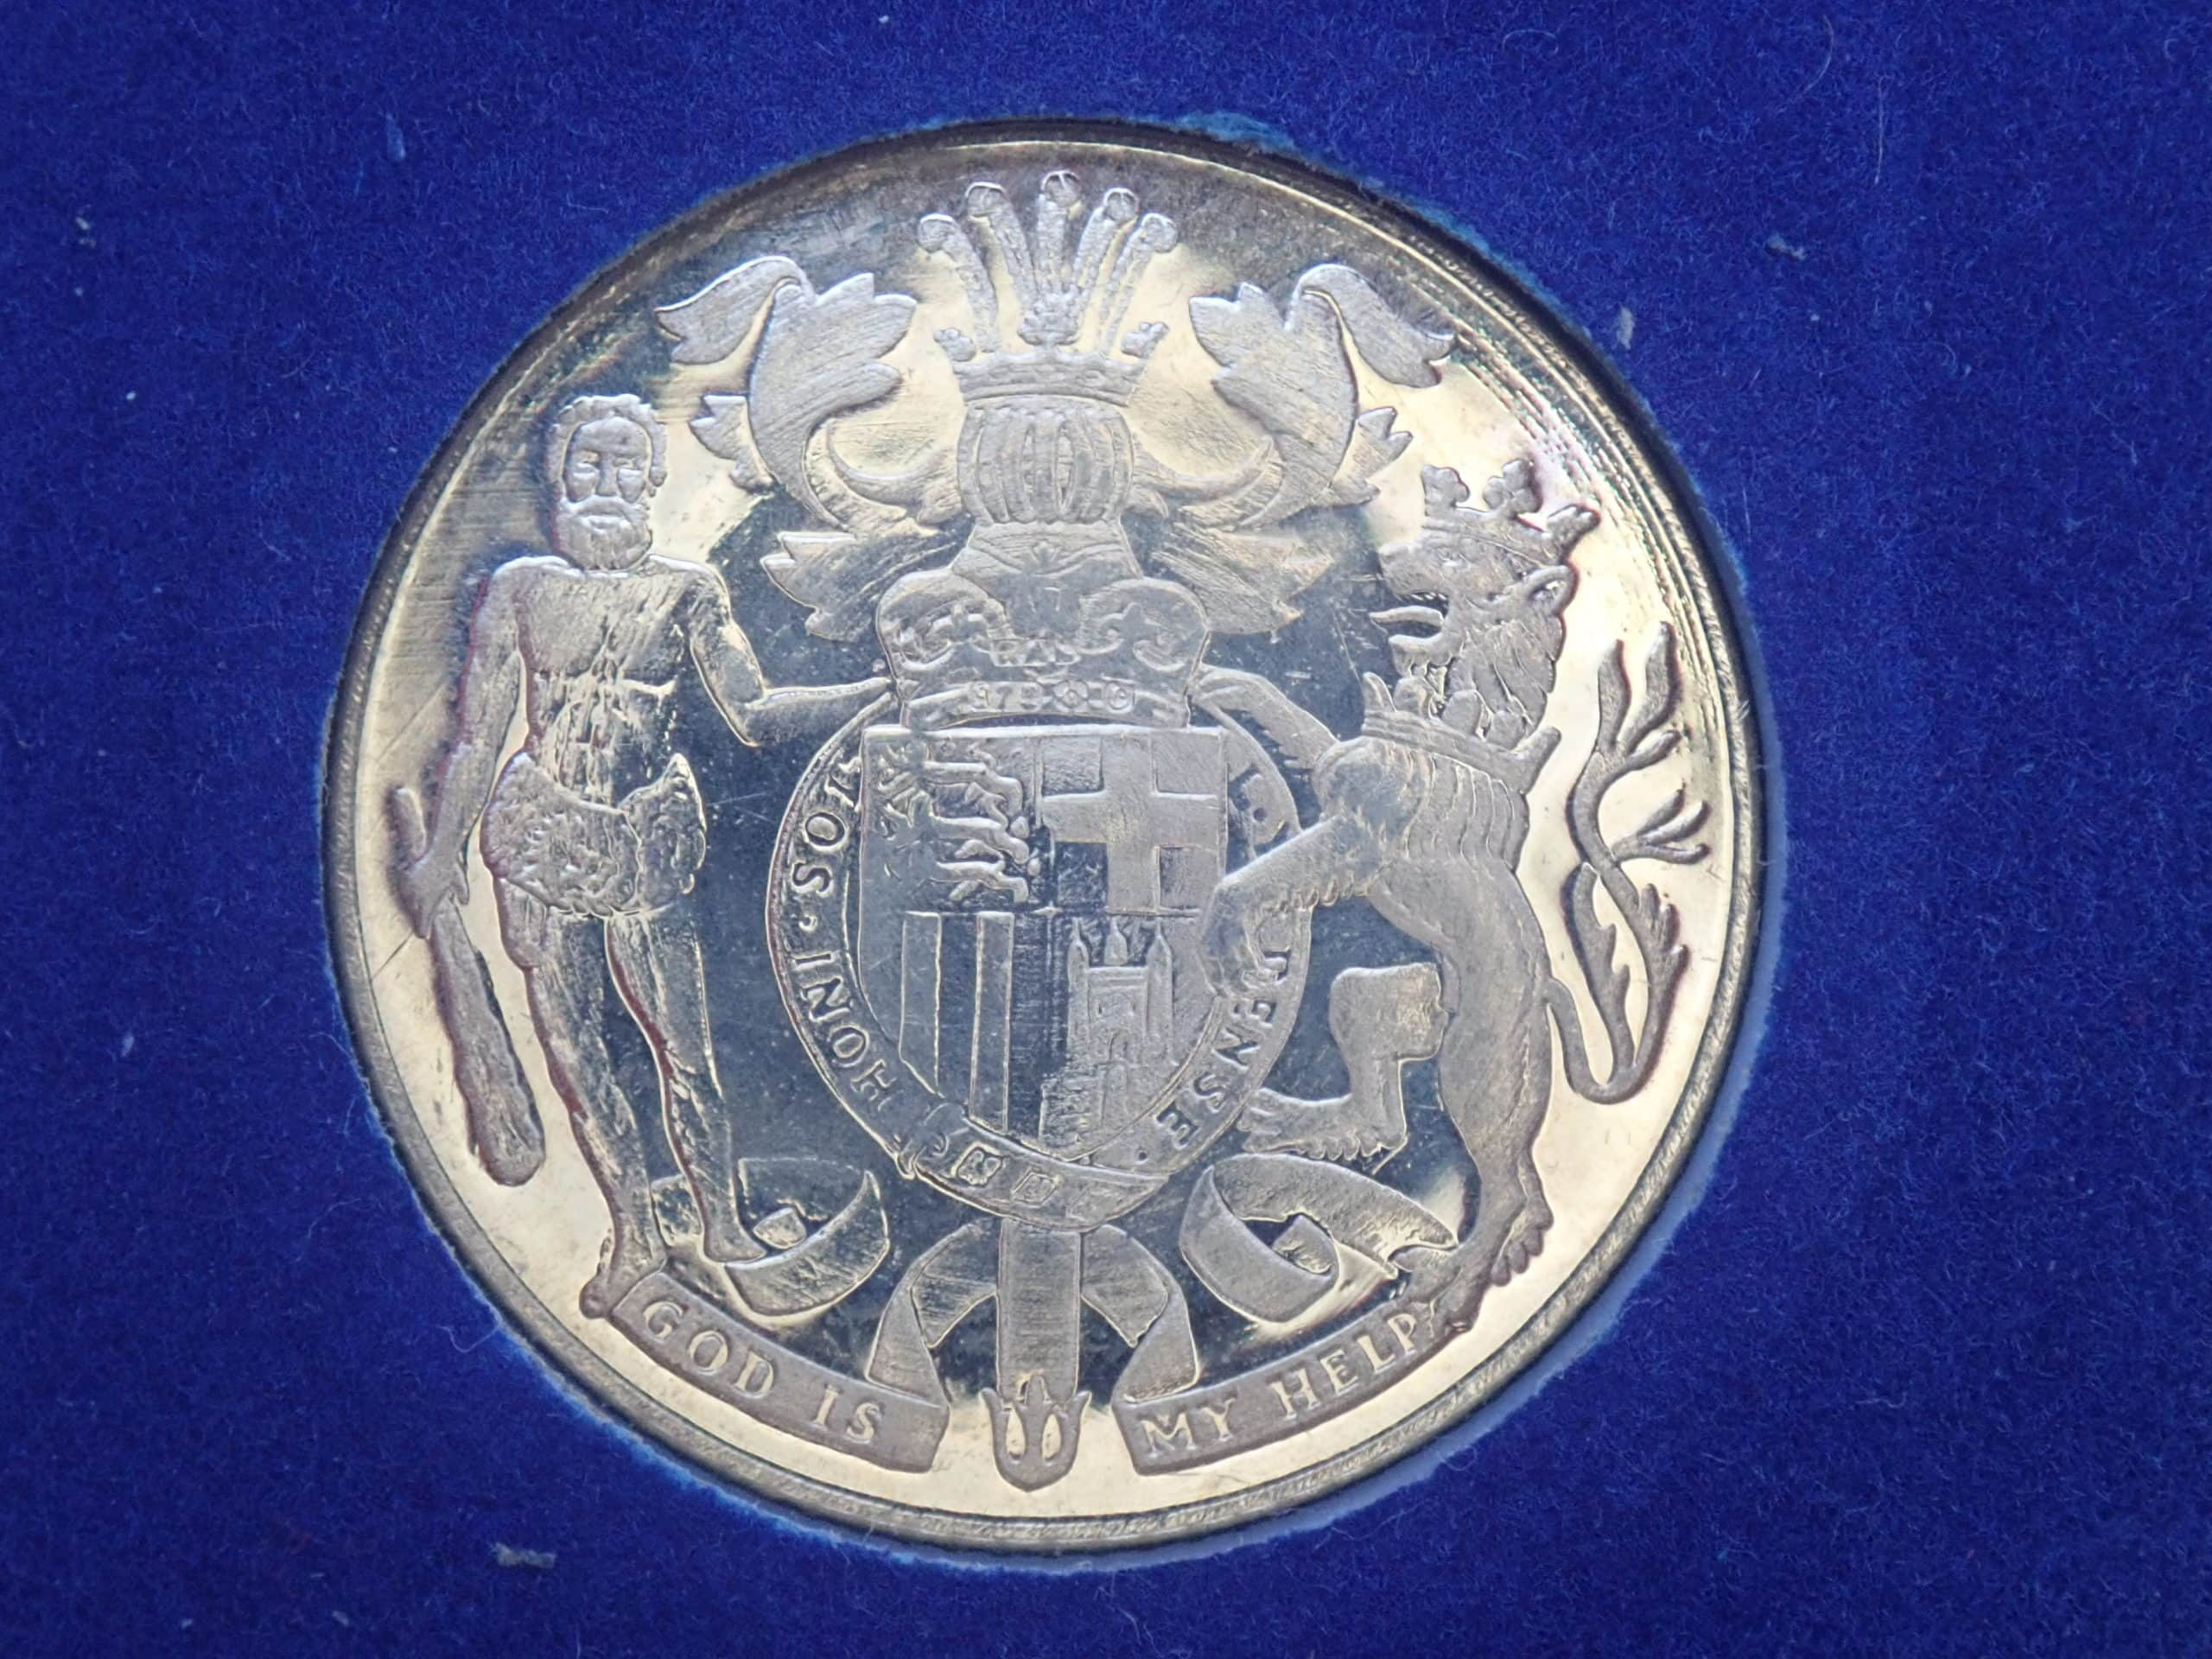 Gold 9ct Silver Jubilee Commemorative Medal 2.5gms, Prince Philip Box & Cert. Number 3213